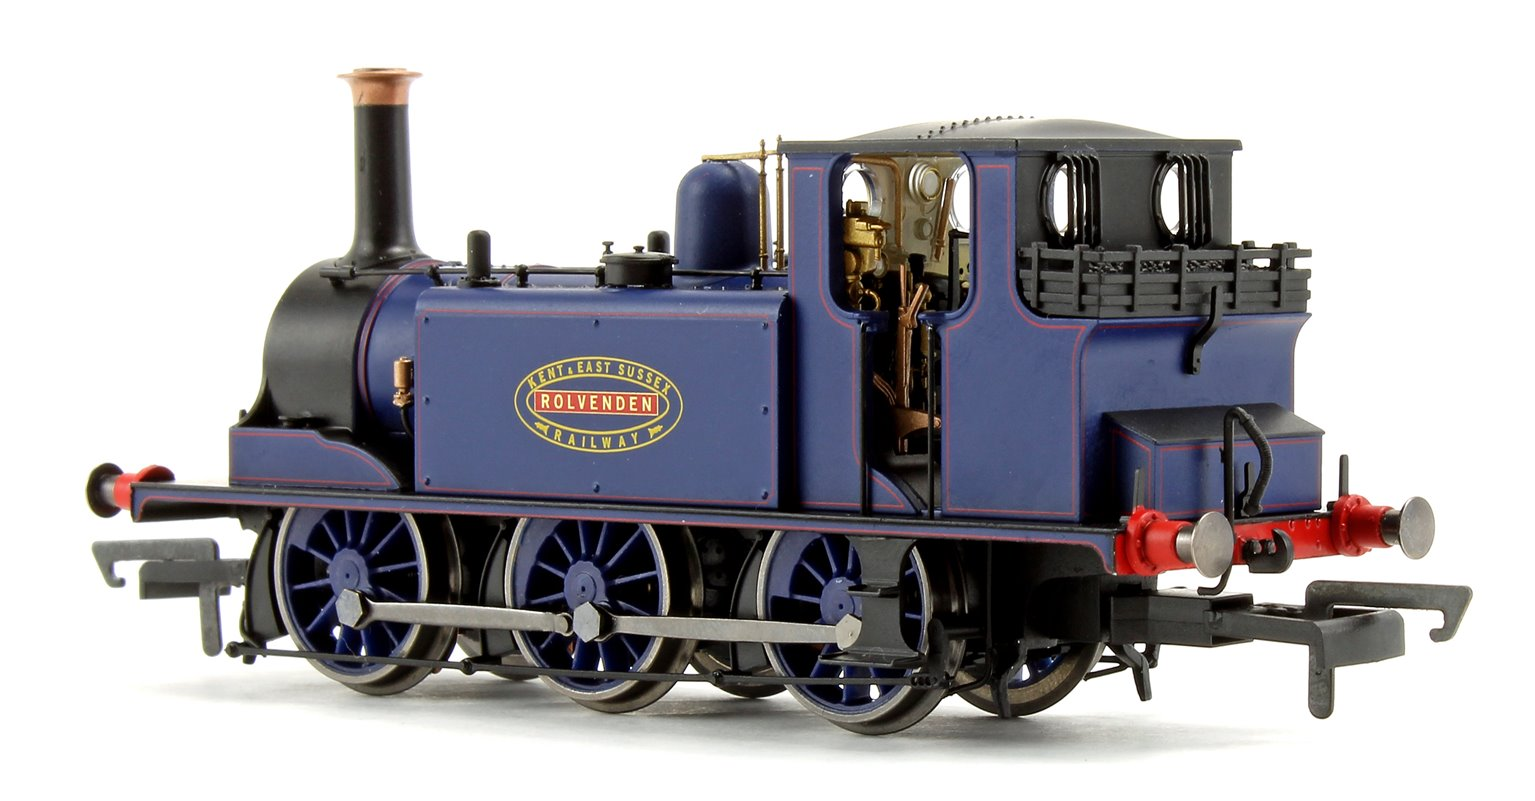 K&ESR, 'Terrier', 0-6-0T, No. 5 'Rolvenden'  DCC FITTED